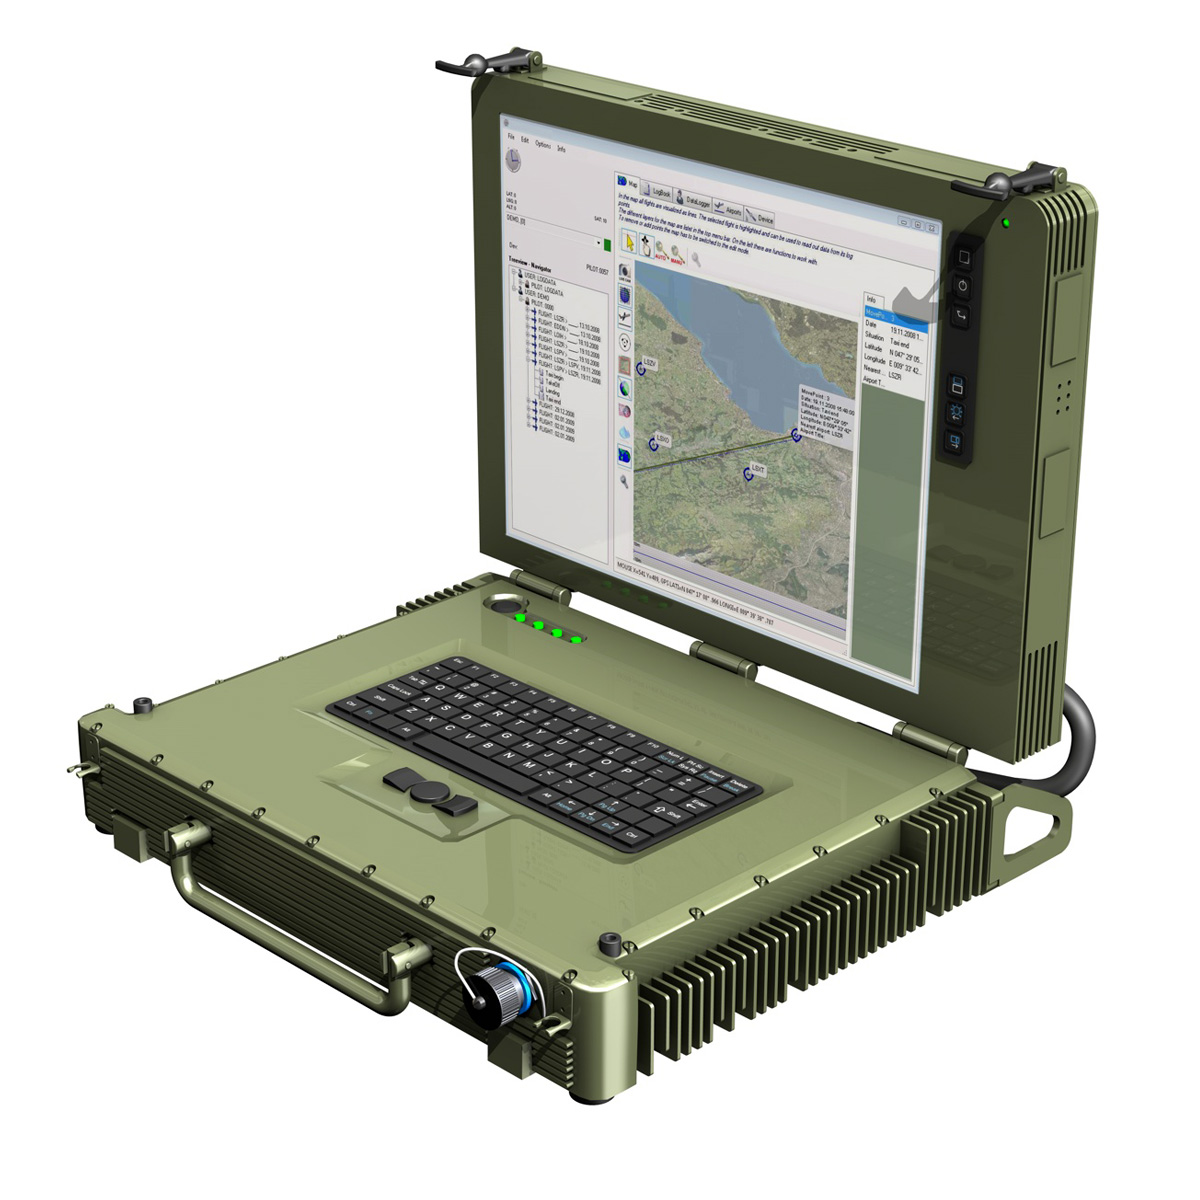 Military Rugged Laptop Rugs Ideas